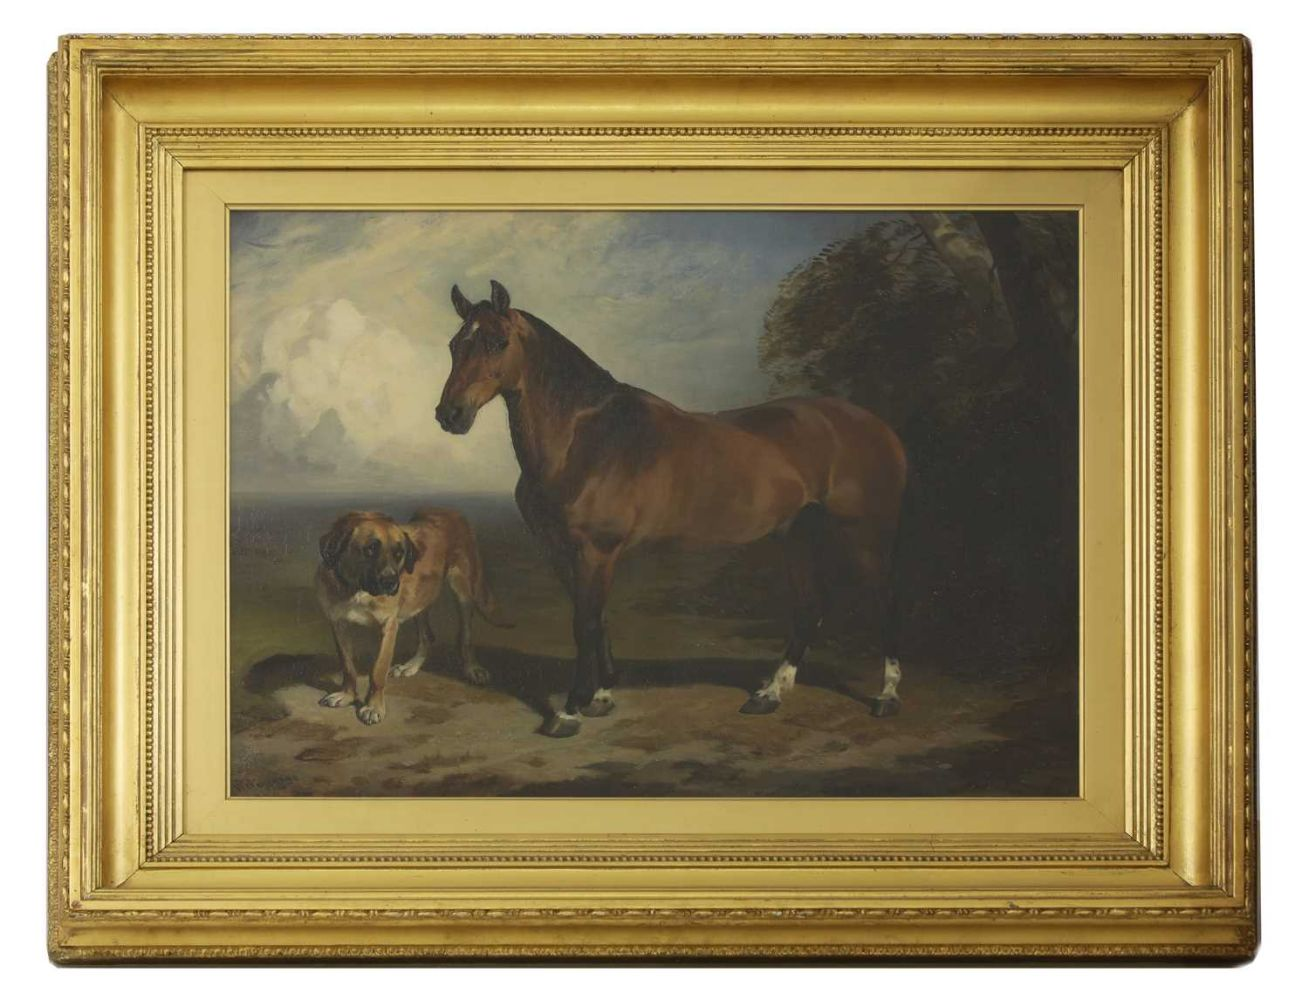 Sporting Art, Wildlife and Dogs - Live Online